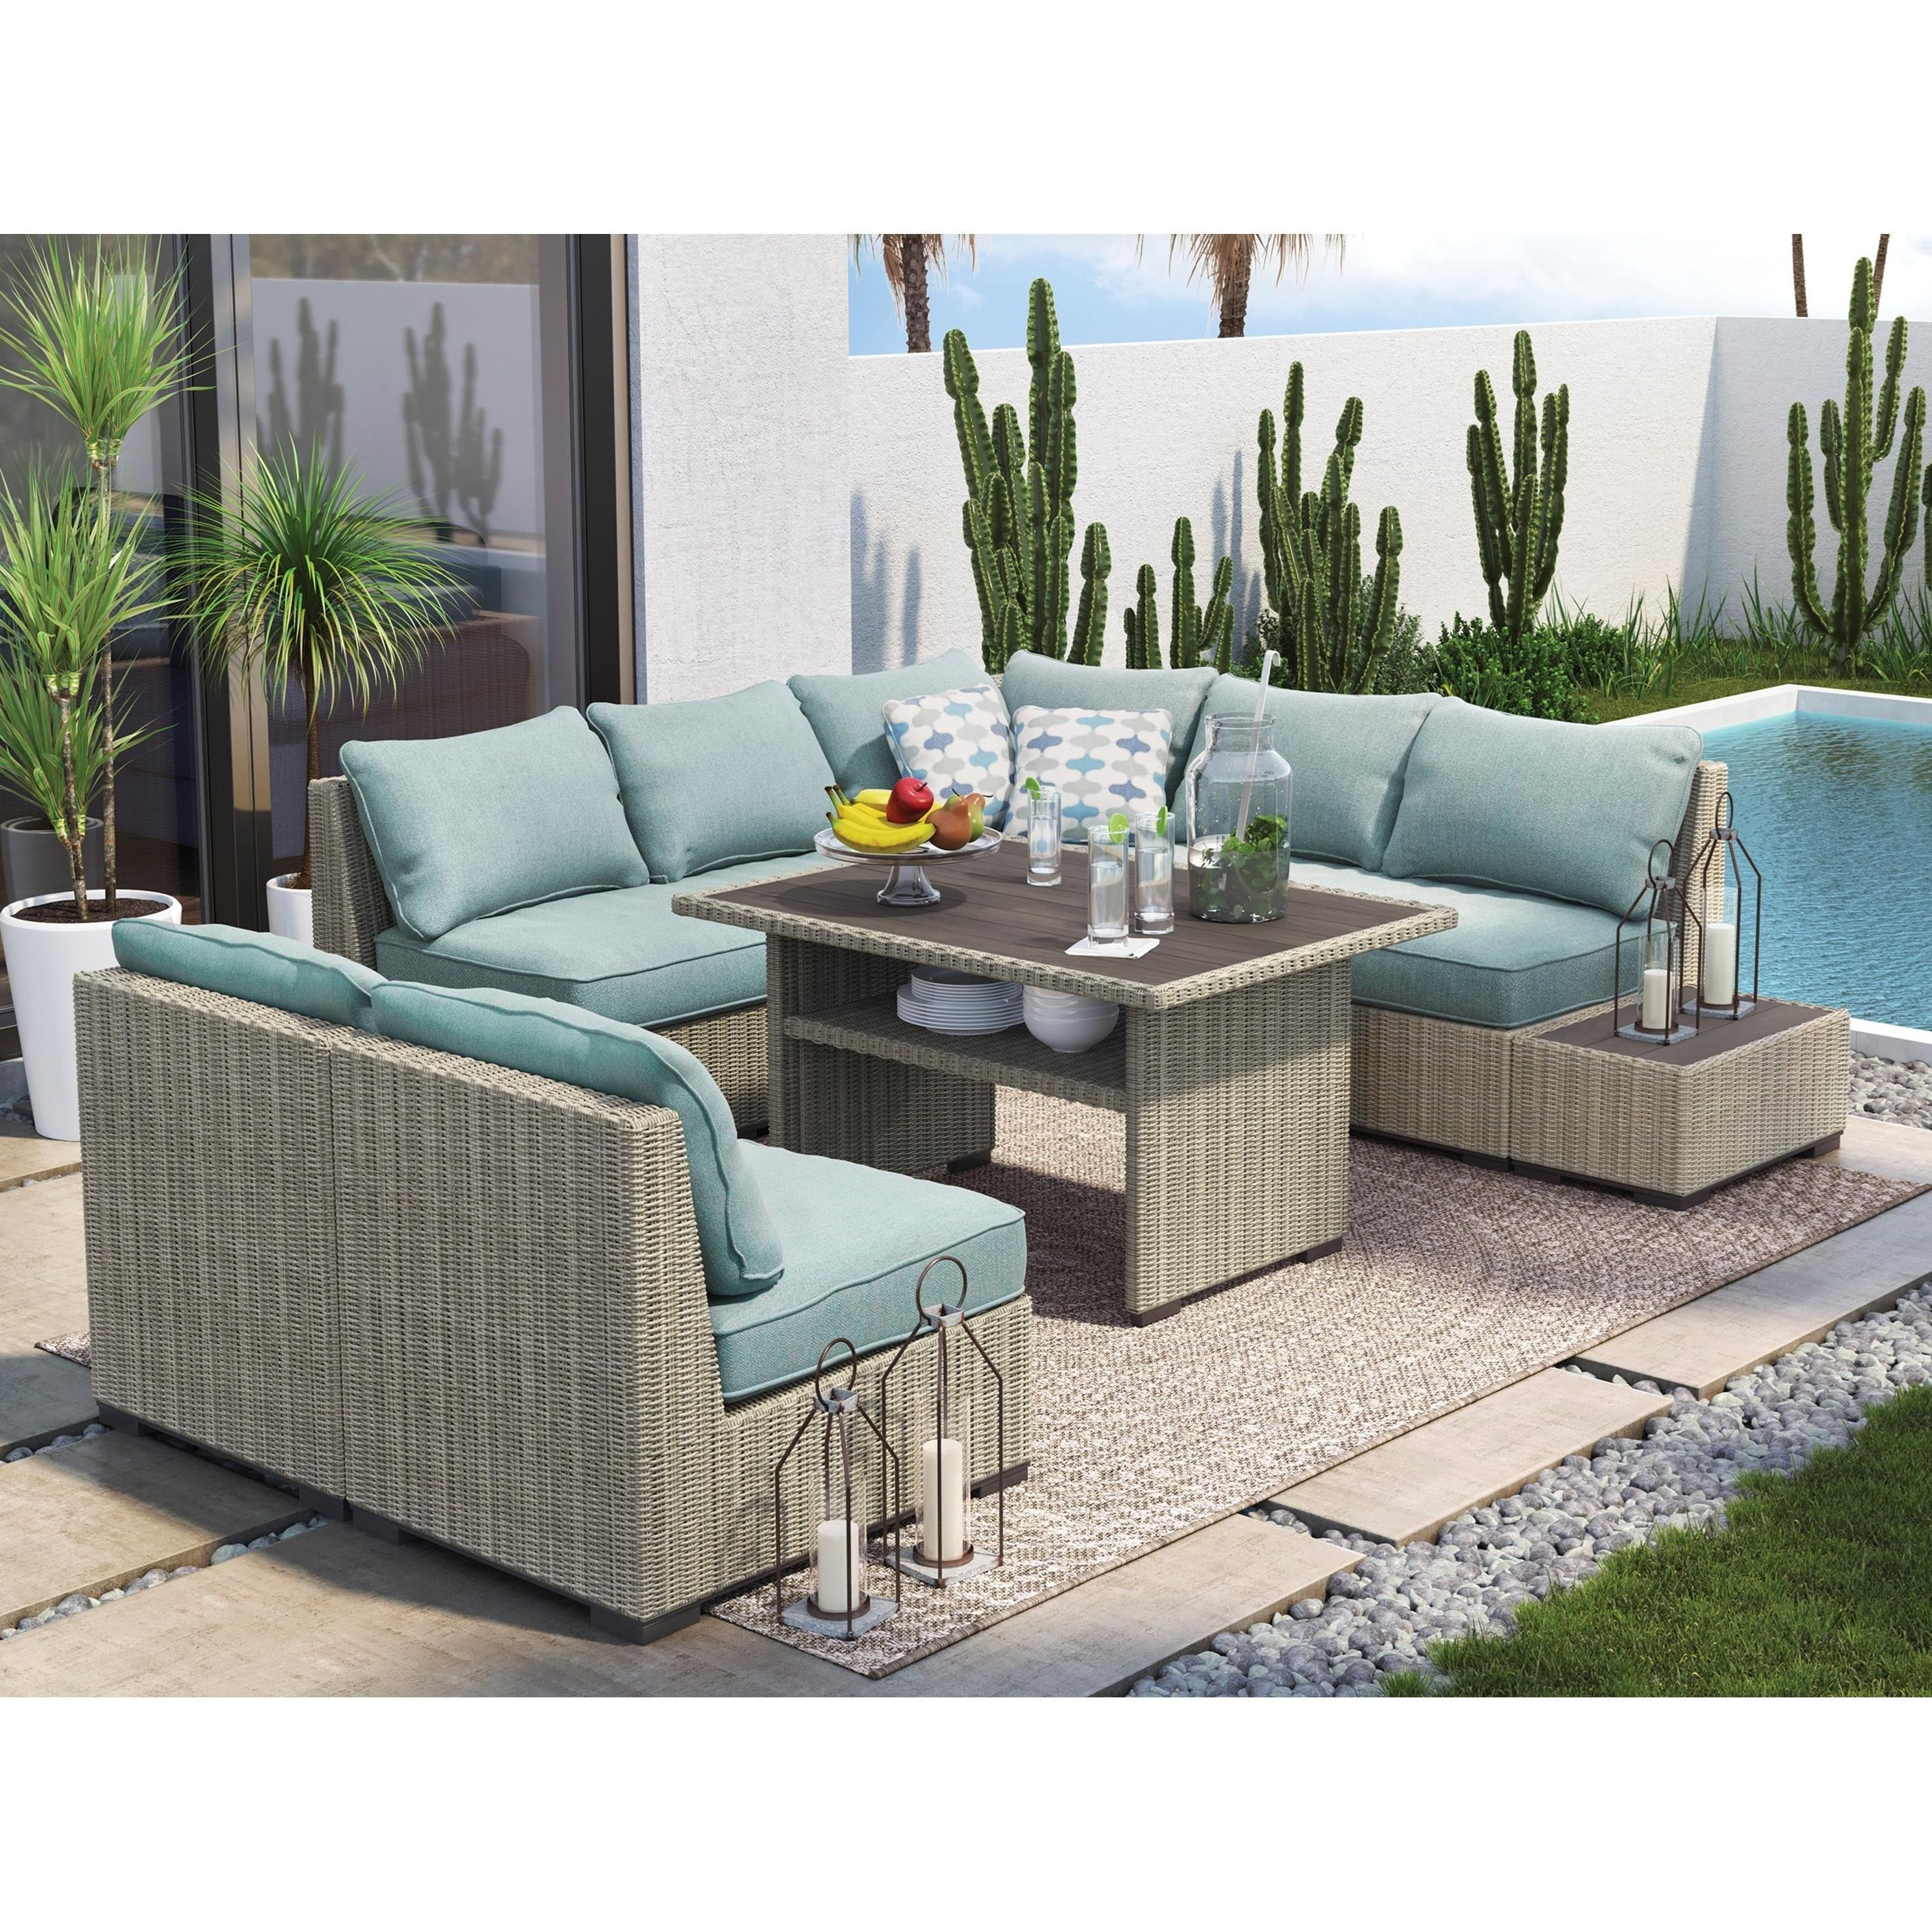 Ordinaire Signature Design By Ashley Silent Brook Outdoor Conversation Set